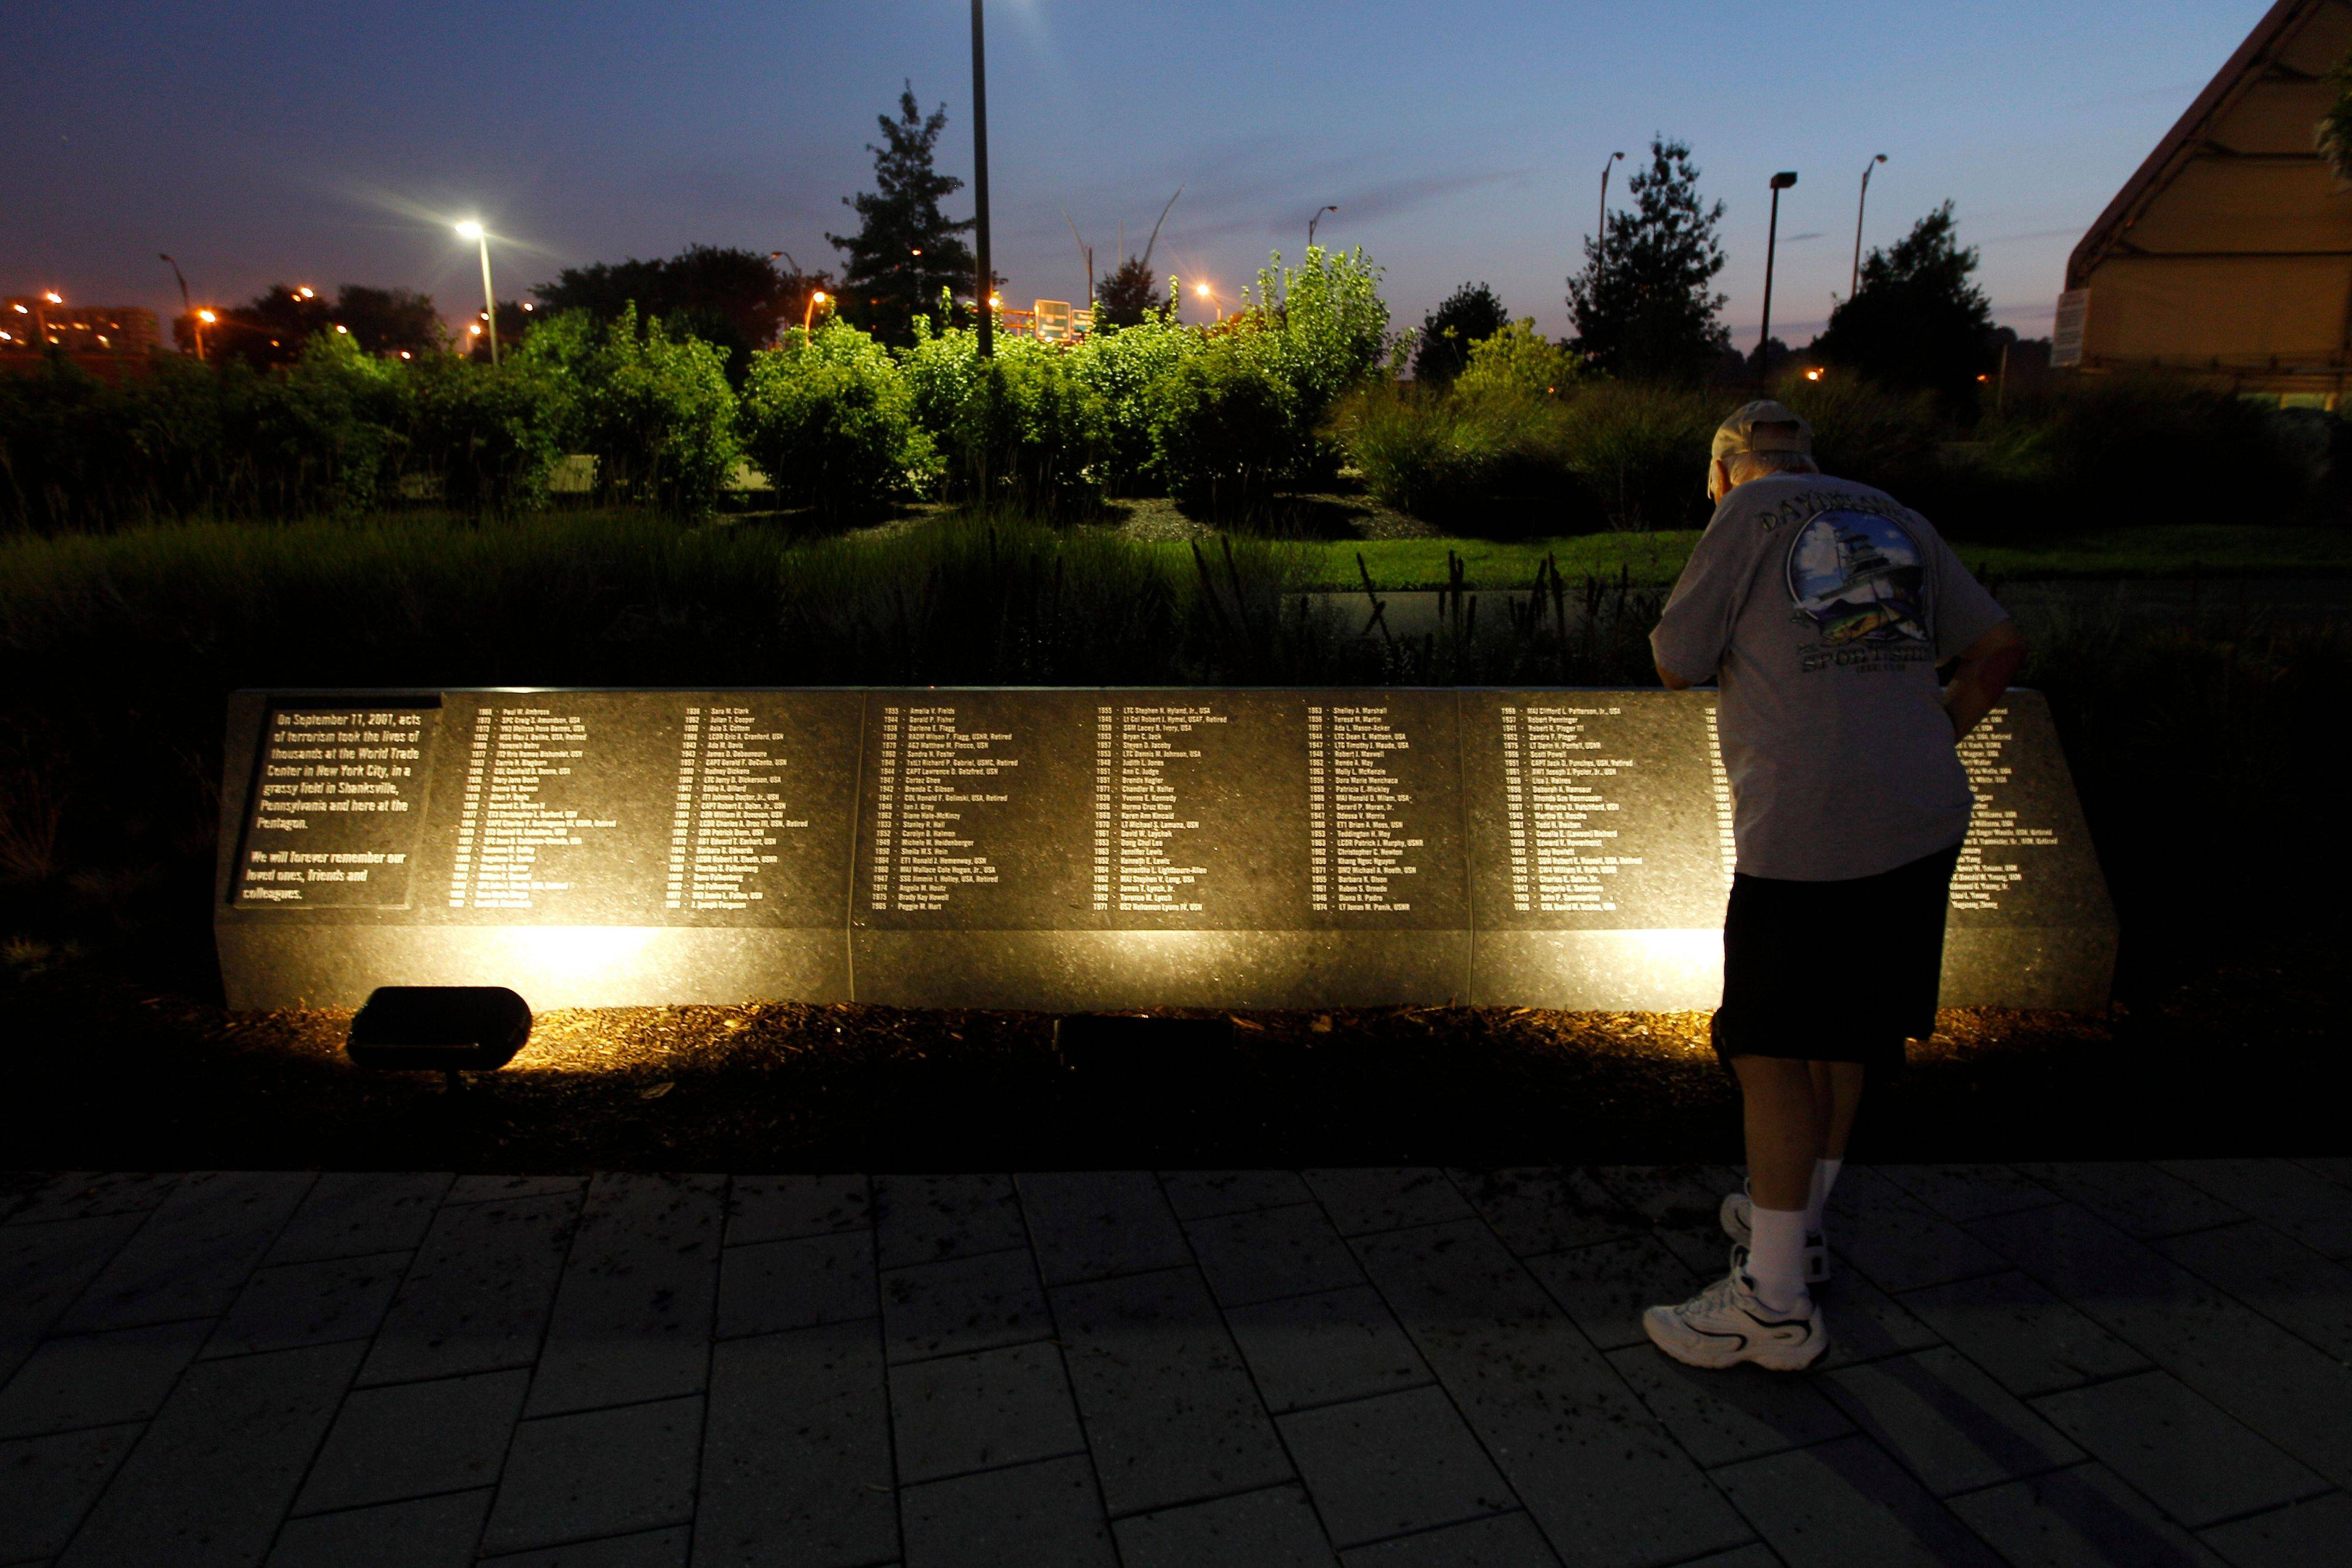 A visitor to the Pentagon Memorial reads the names of people who died on Sept. 11, 2001, in the terrorist attack on the Pentagon in Arlington, Va. The Pentagon was the first of the three attack sites to open an official memorial. It was dedicated Sept. 11, 2008.